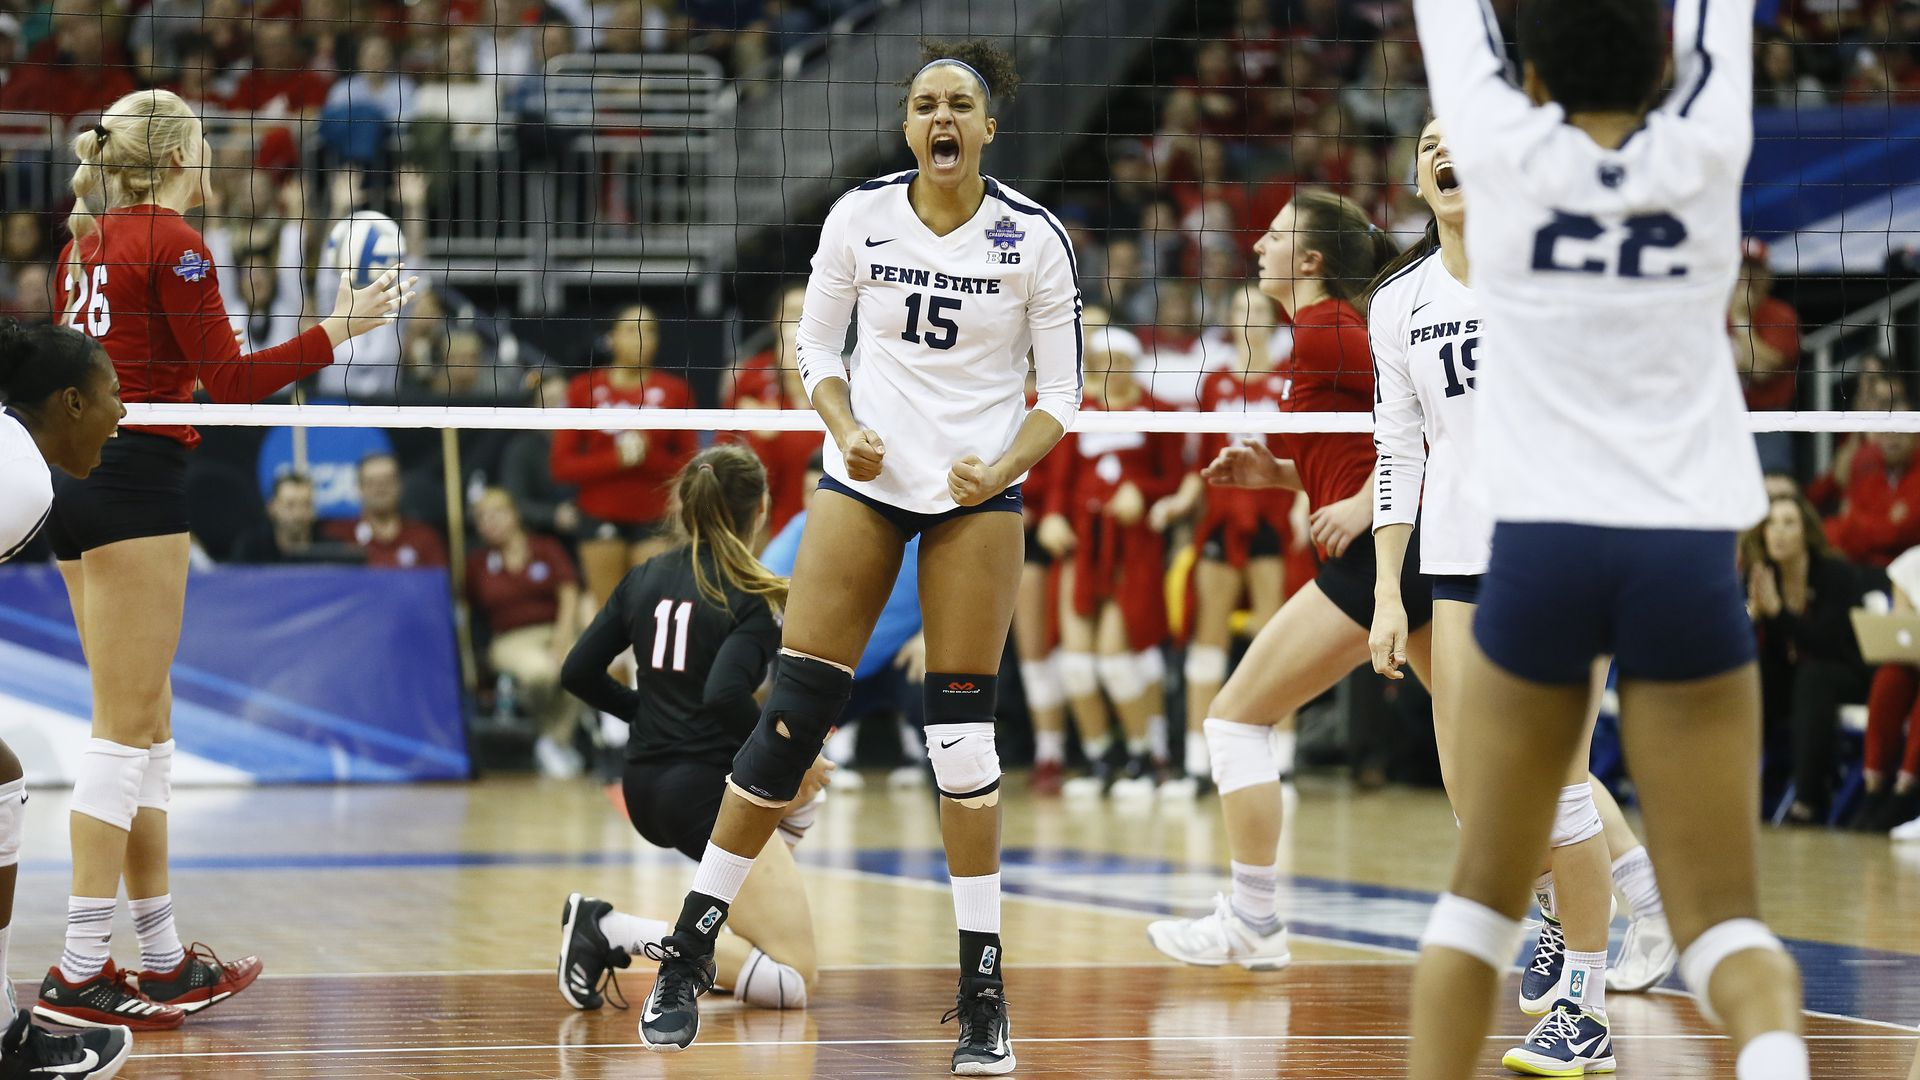 Volleyball player Haleigh Washington reacts in triumph to a play.